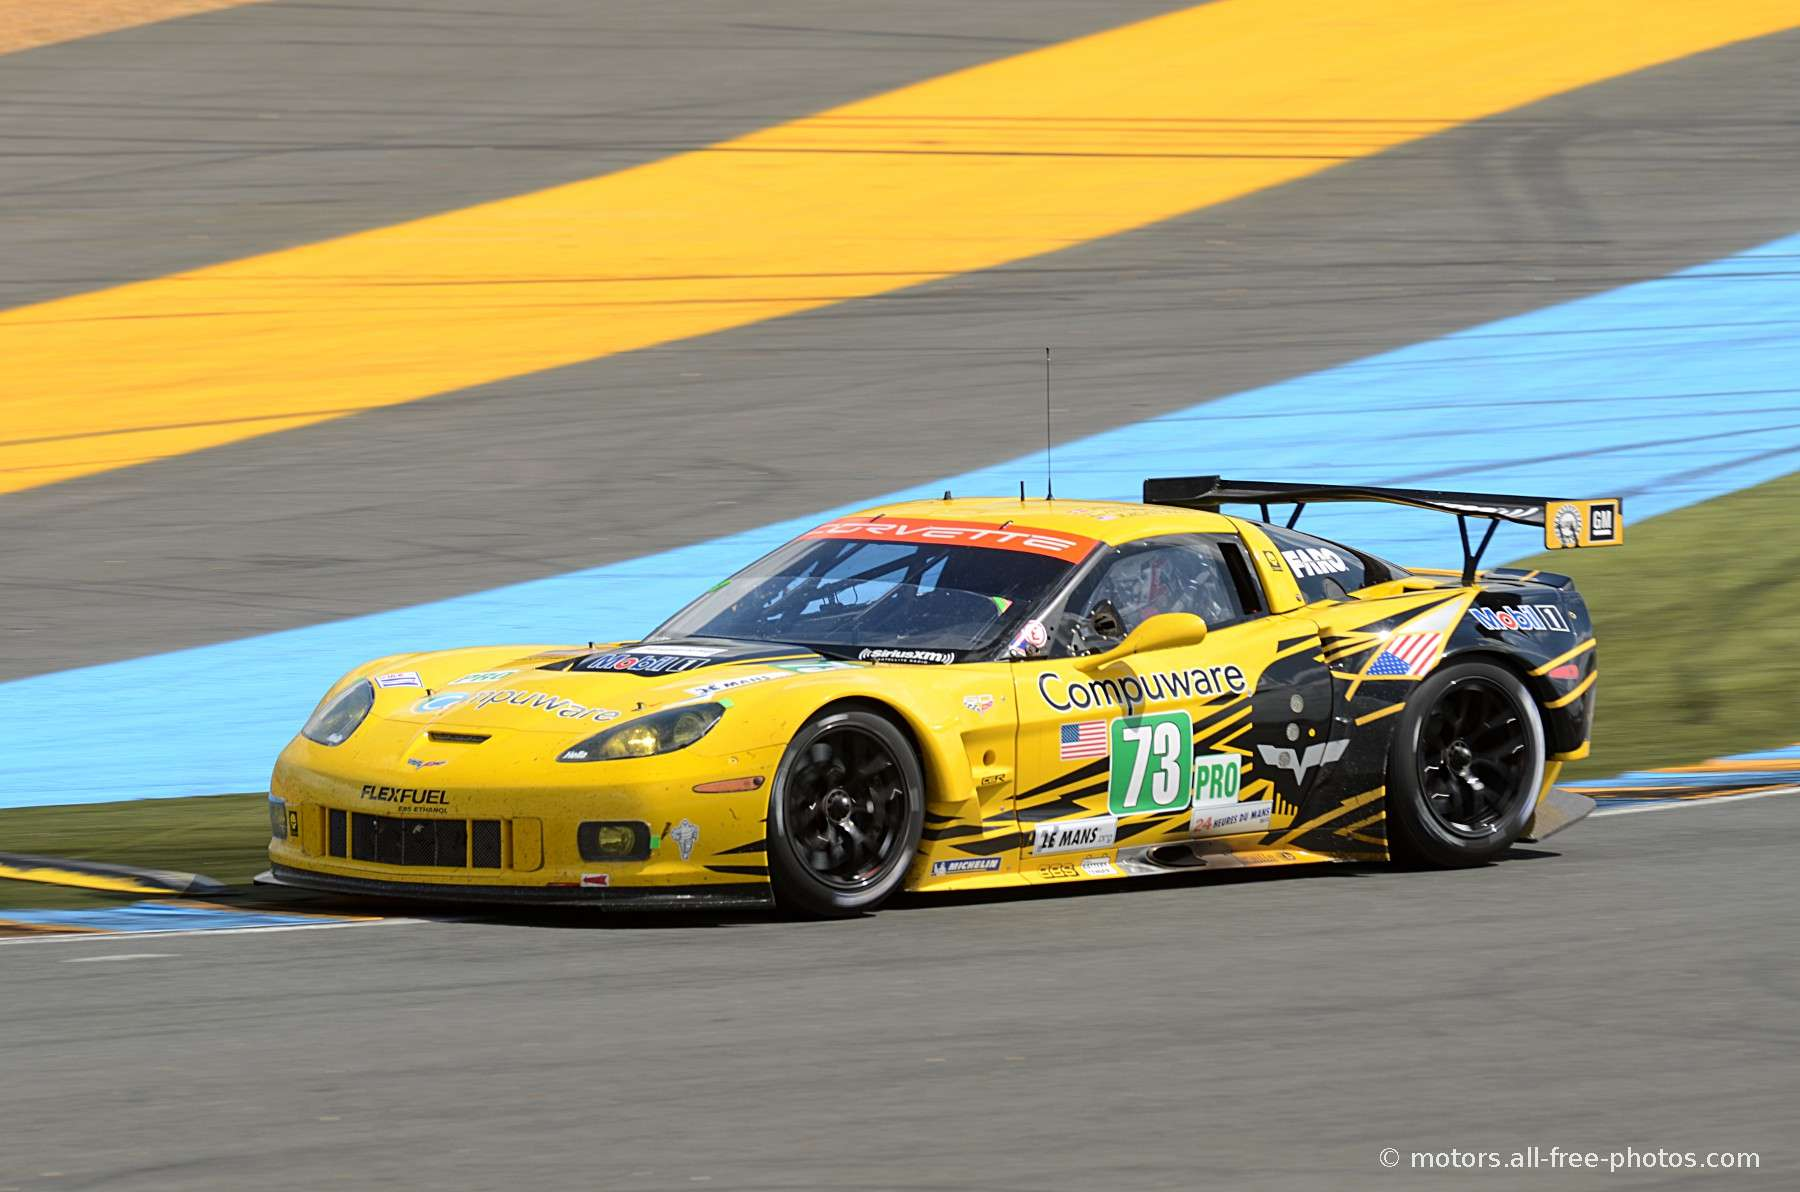 Chevrolet Corvette C6-ZR1 - Team Corvette Racing